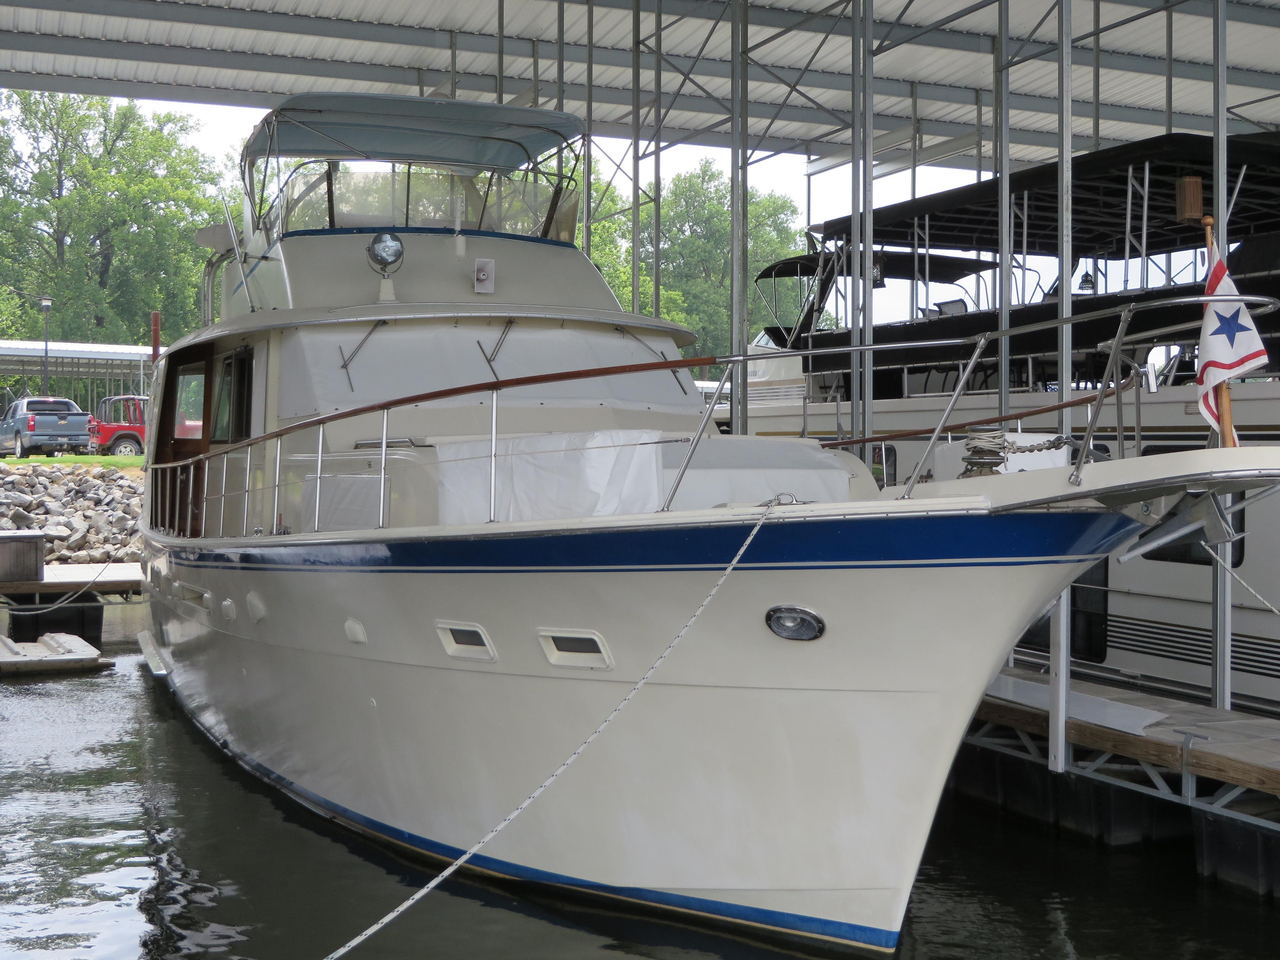 1980 used hatteras 53 motor yacht motor yacht for sale for Used motor yacht for sale